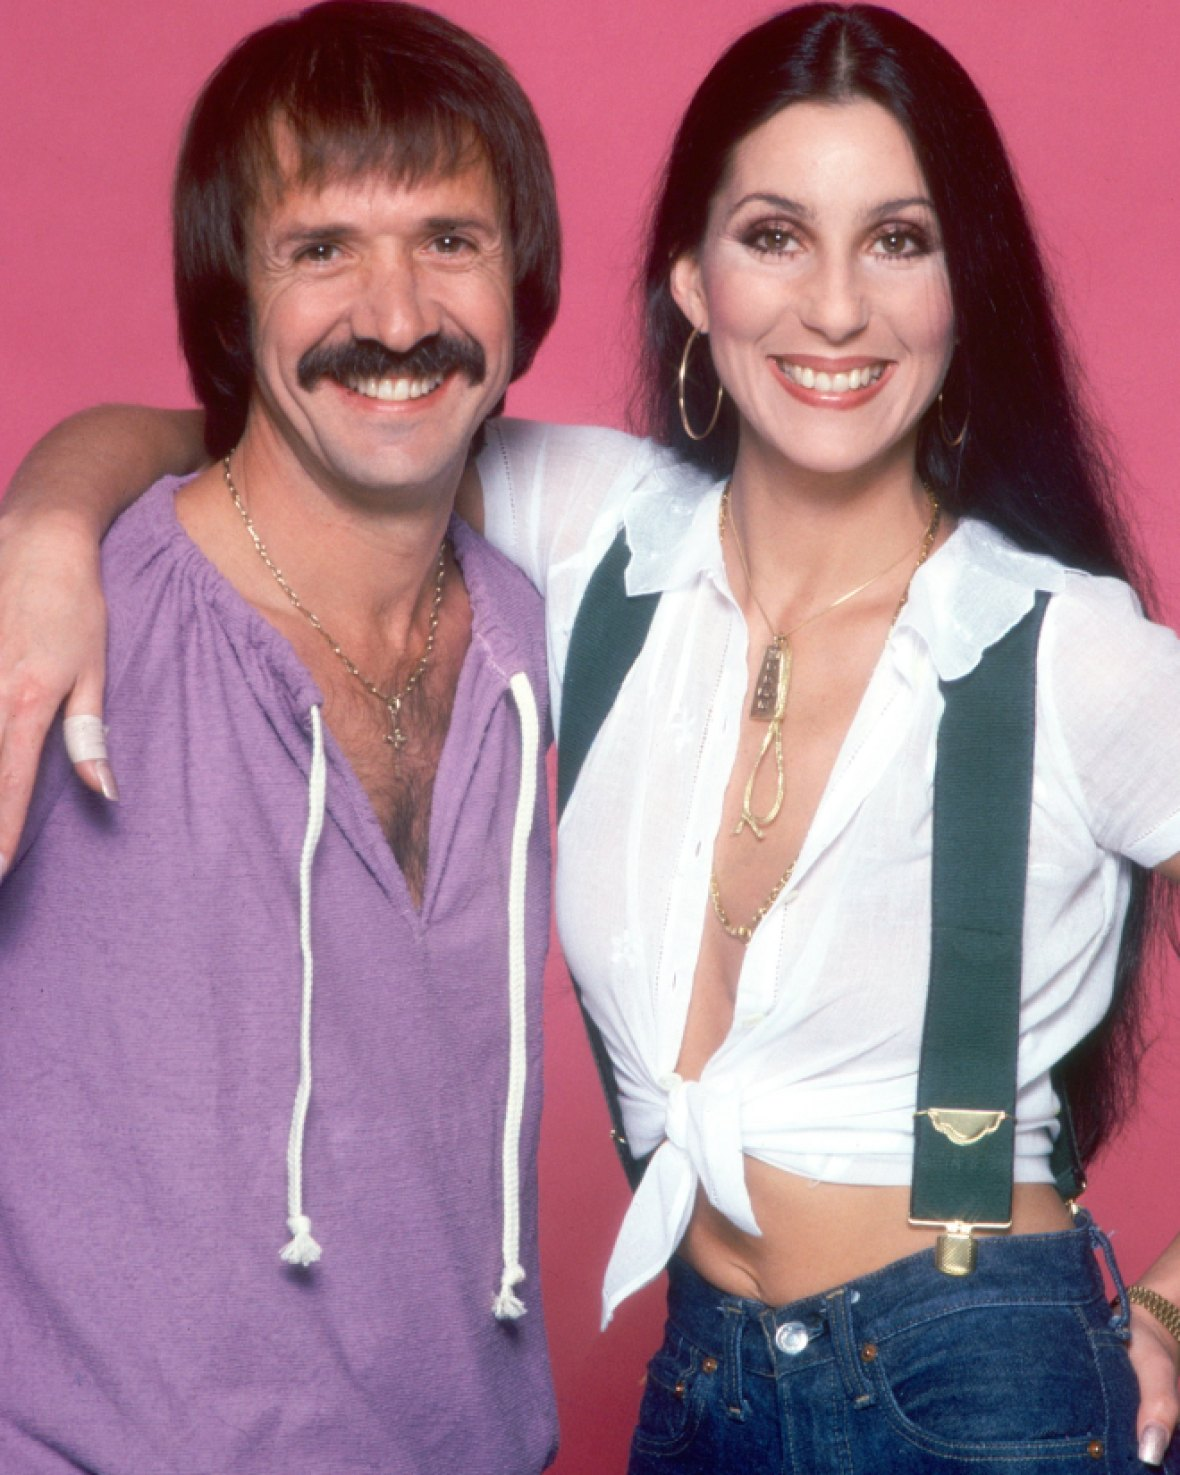 sonny cher getty images